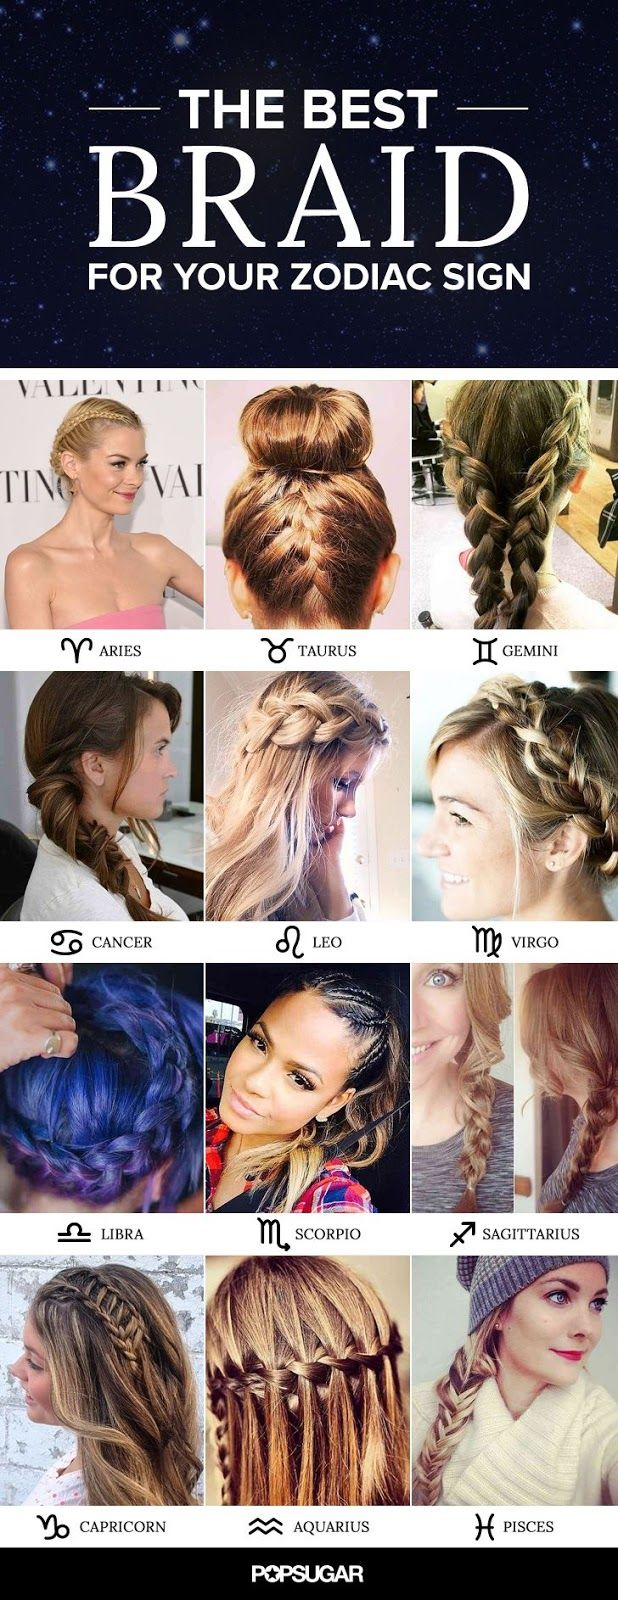 Beauty and the Mist - everything about beauty: Zodiac and Braids